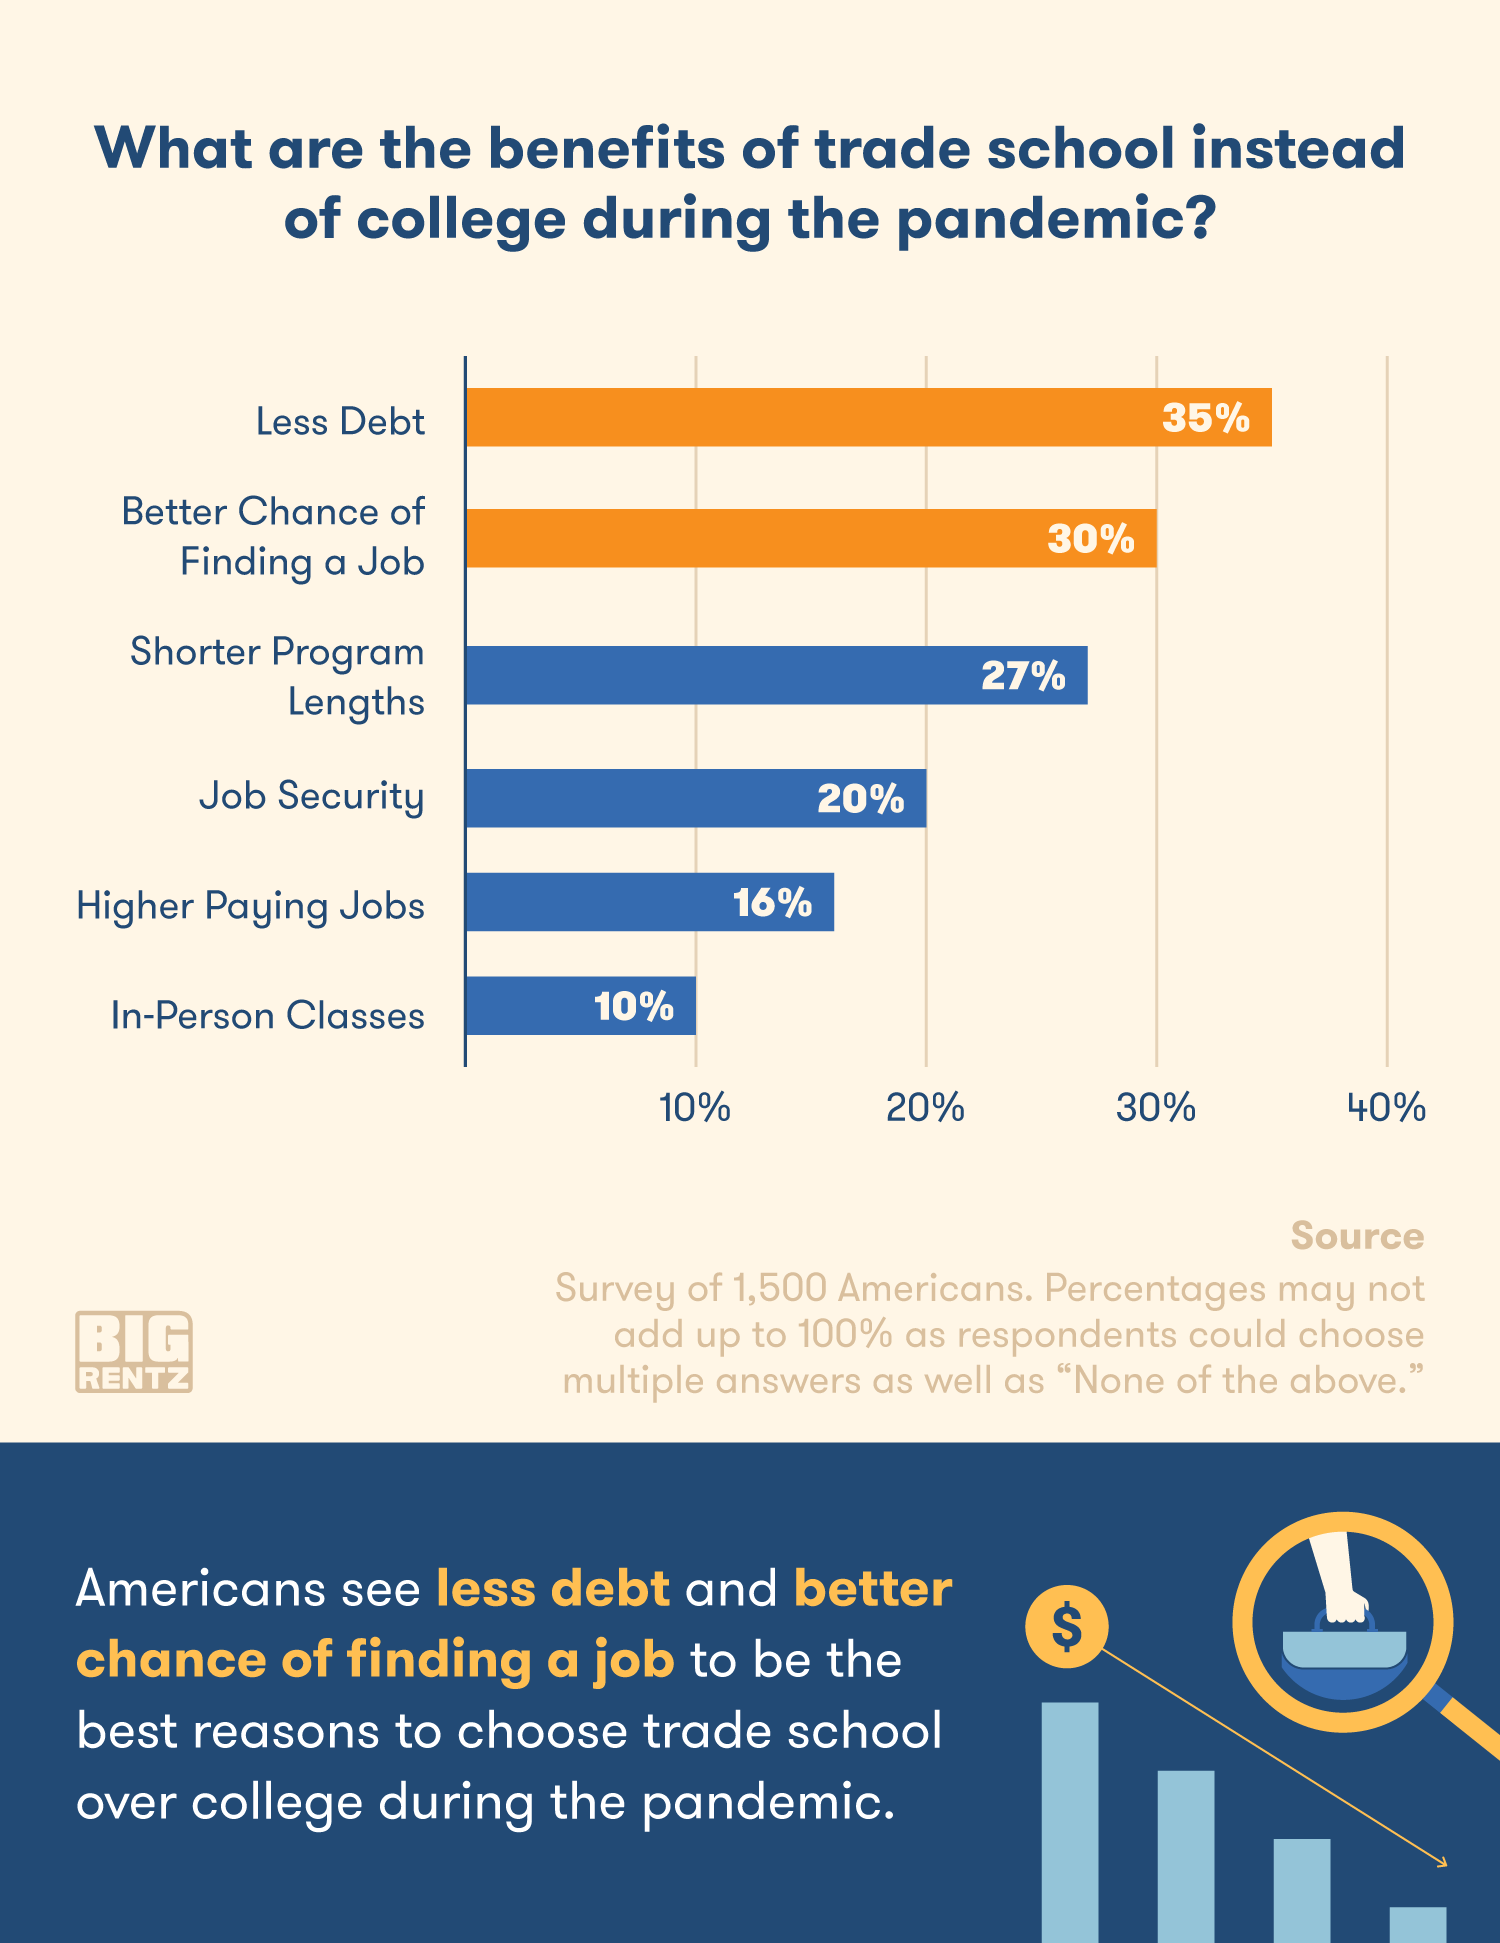 Less debt and better chances of finding a job are the top reasons to choose trade school over college.